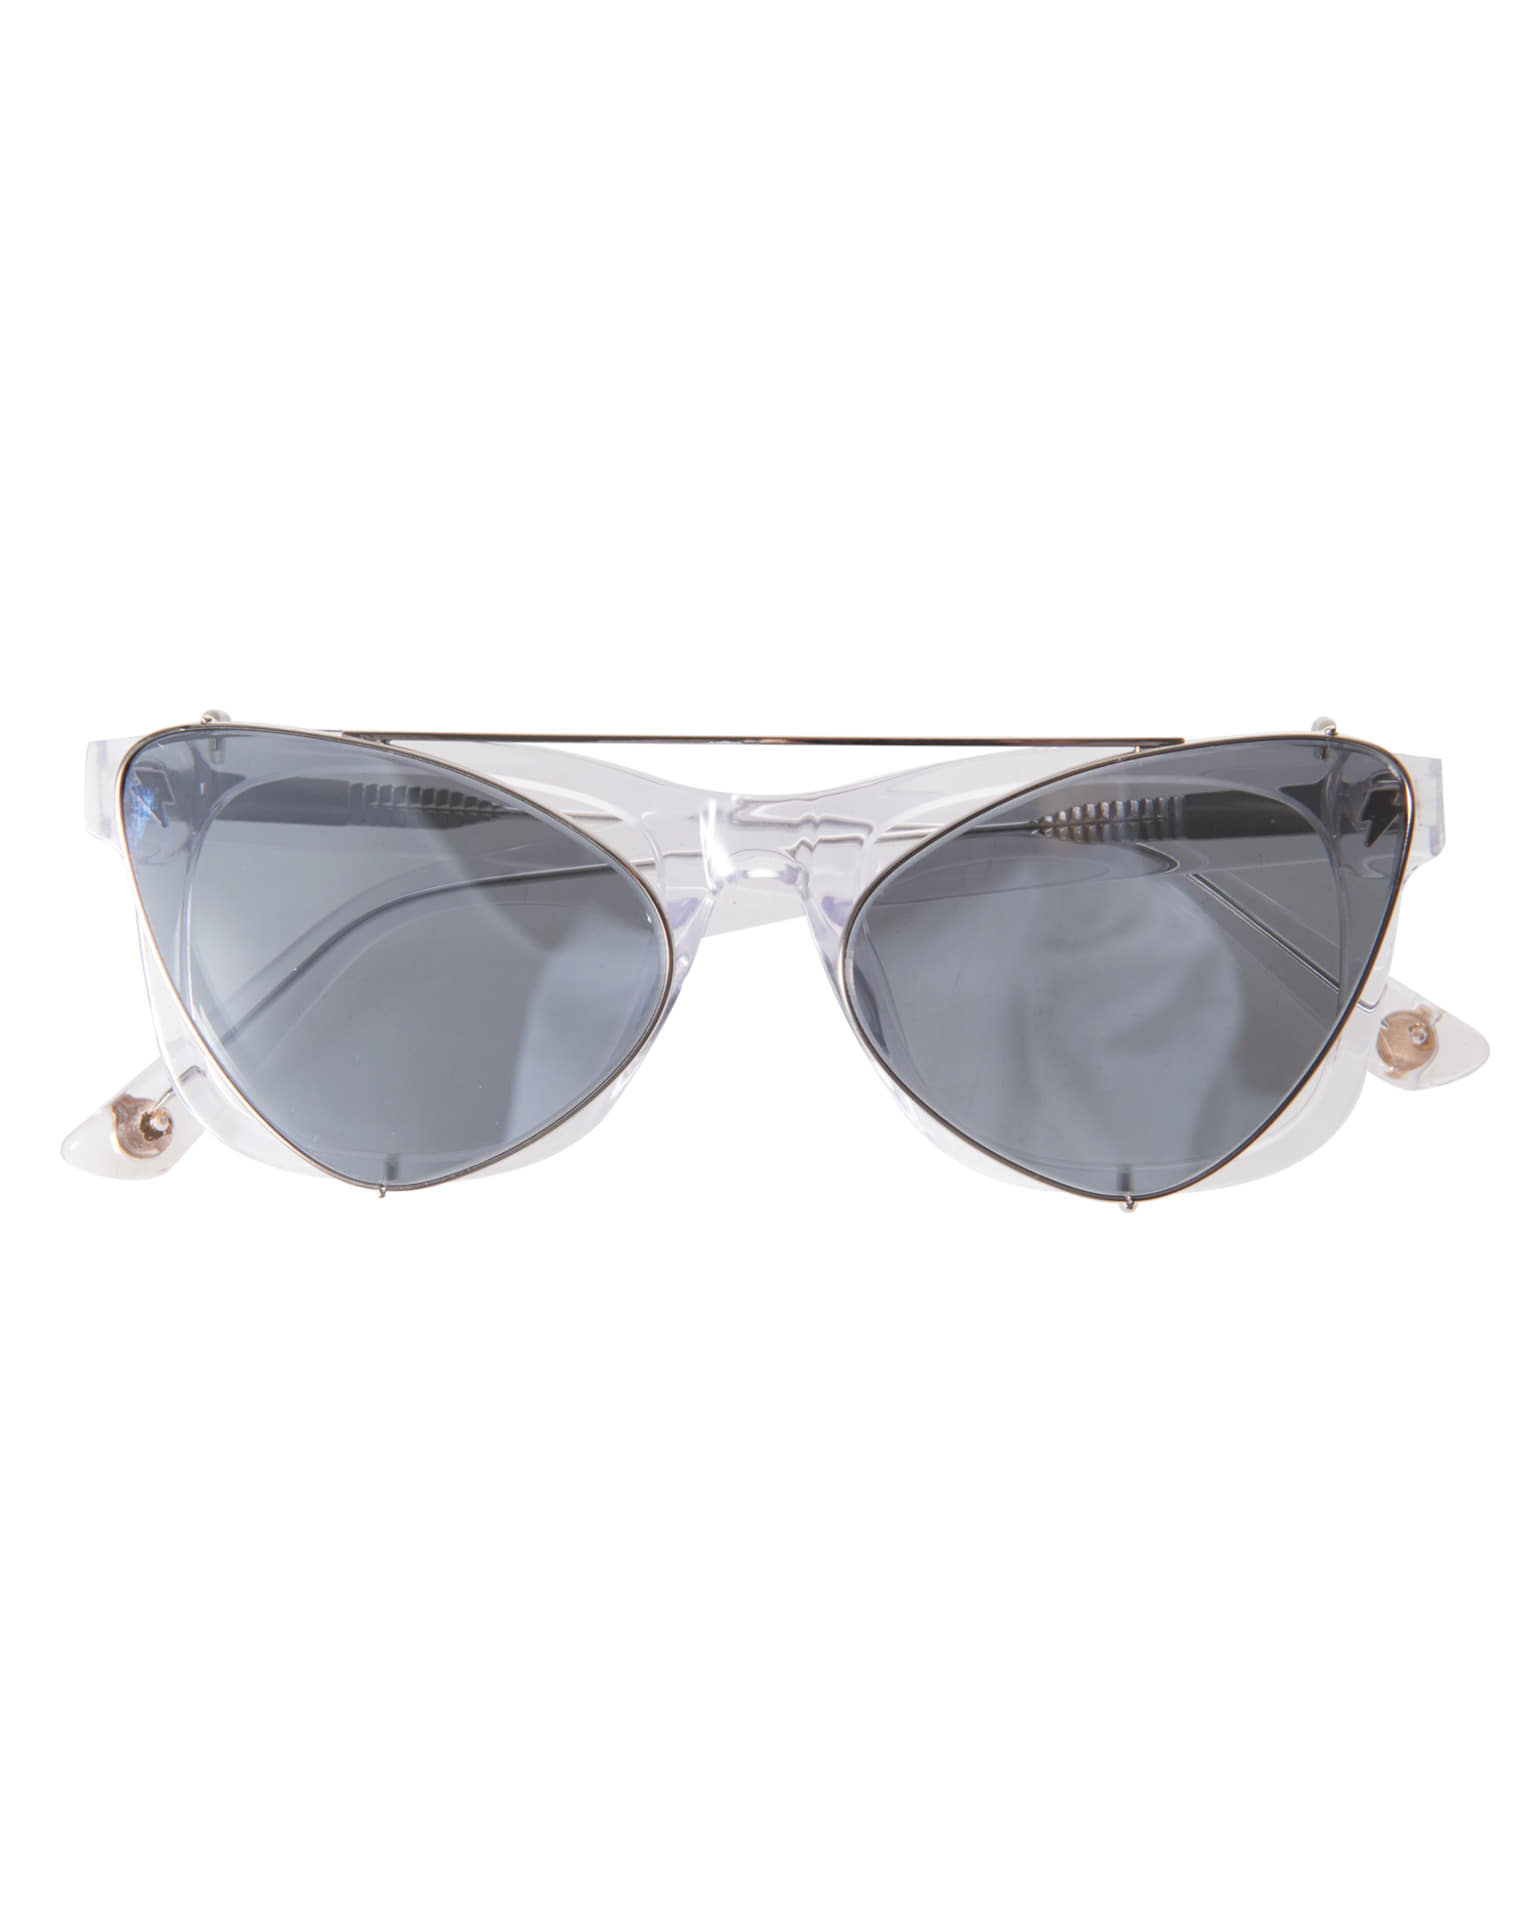 CLIP-ON POINT SUNGLASSES